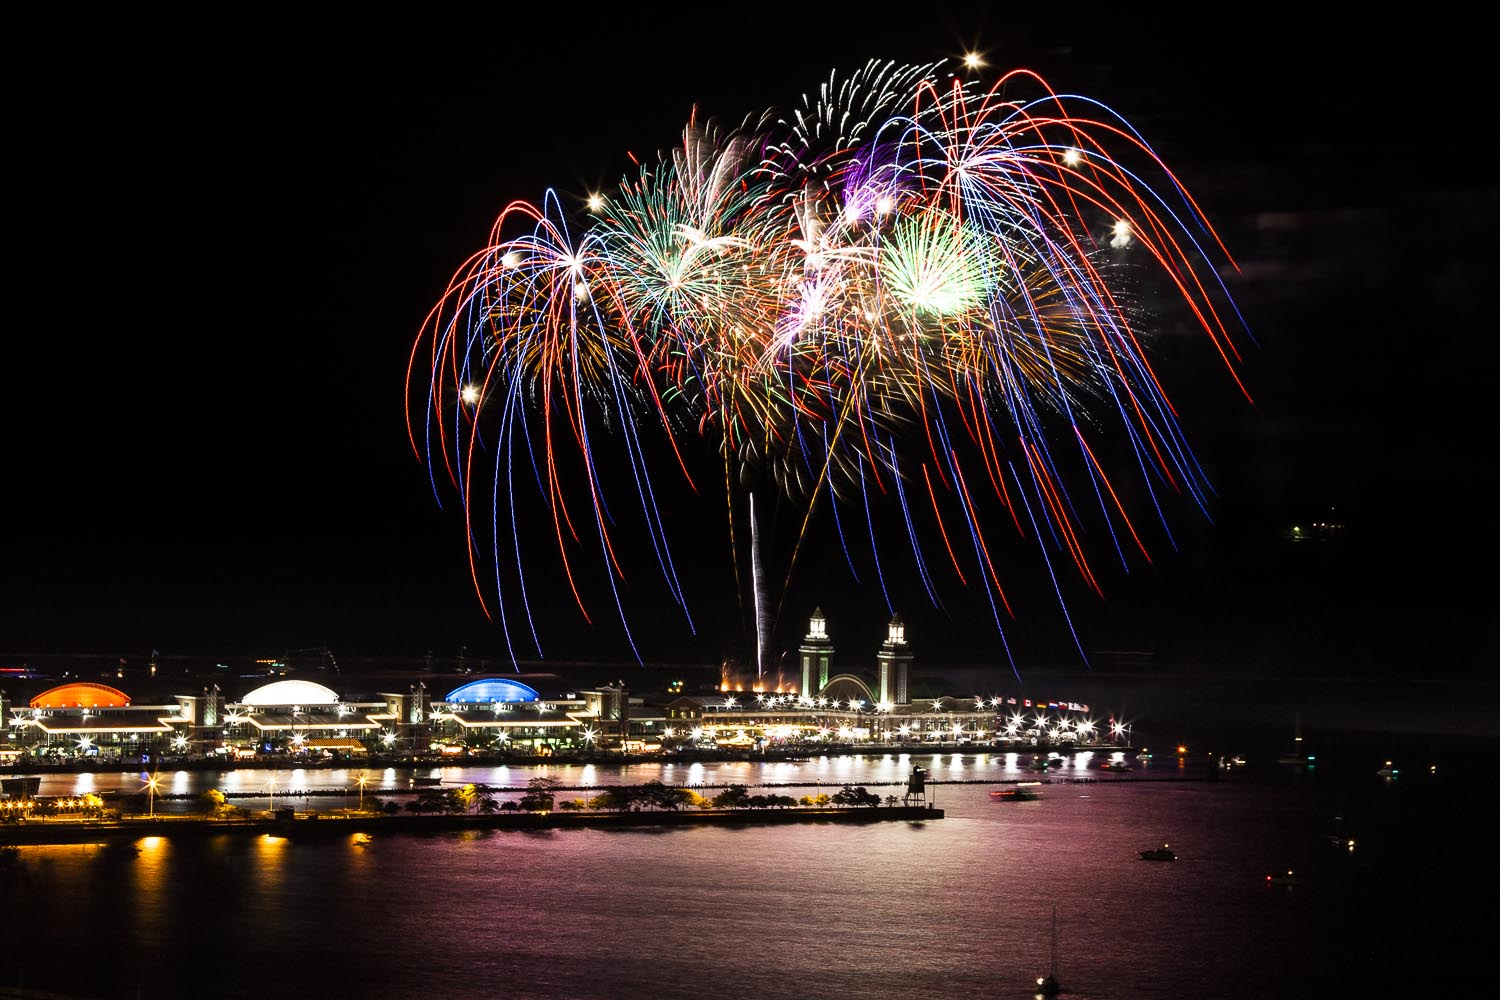 Chicago's July filled with fireworks, food and fun - Wisch ...